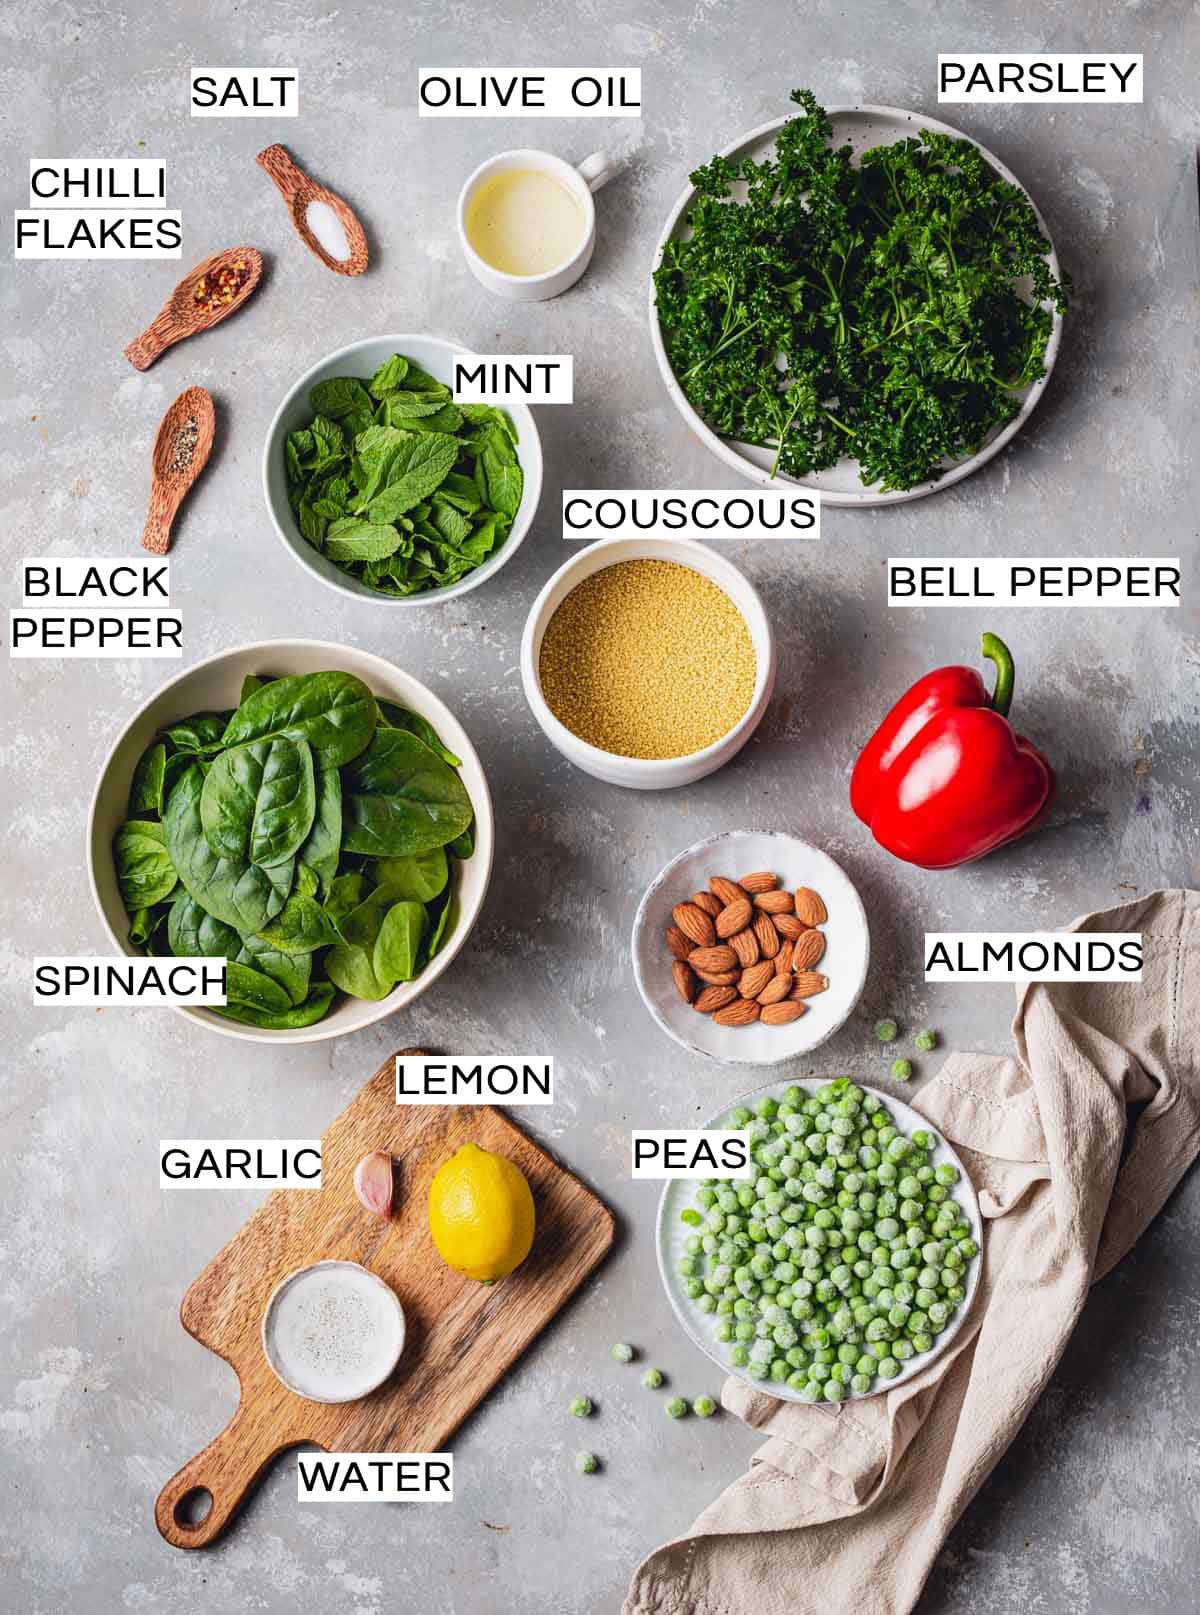 An overhead view of all ingredients needed to make couscous salad laid out in plates and bowls.